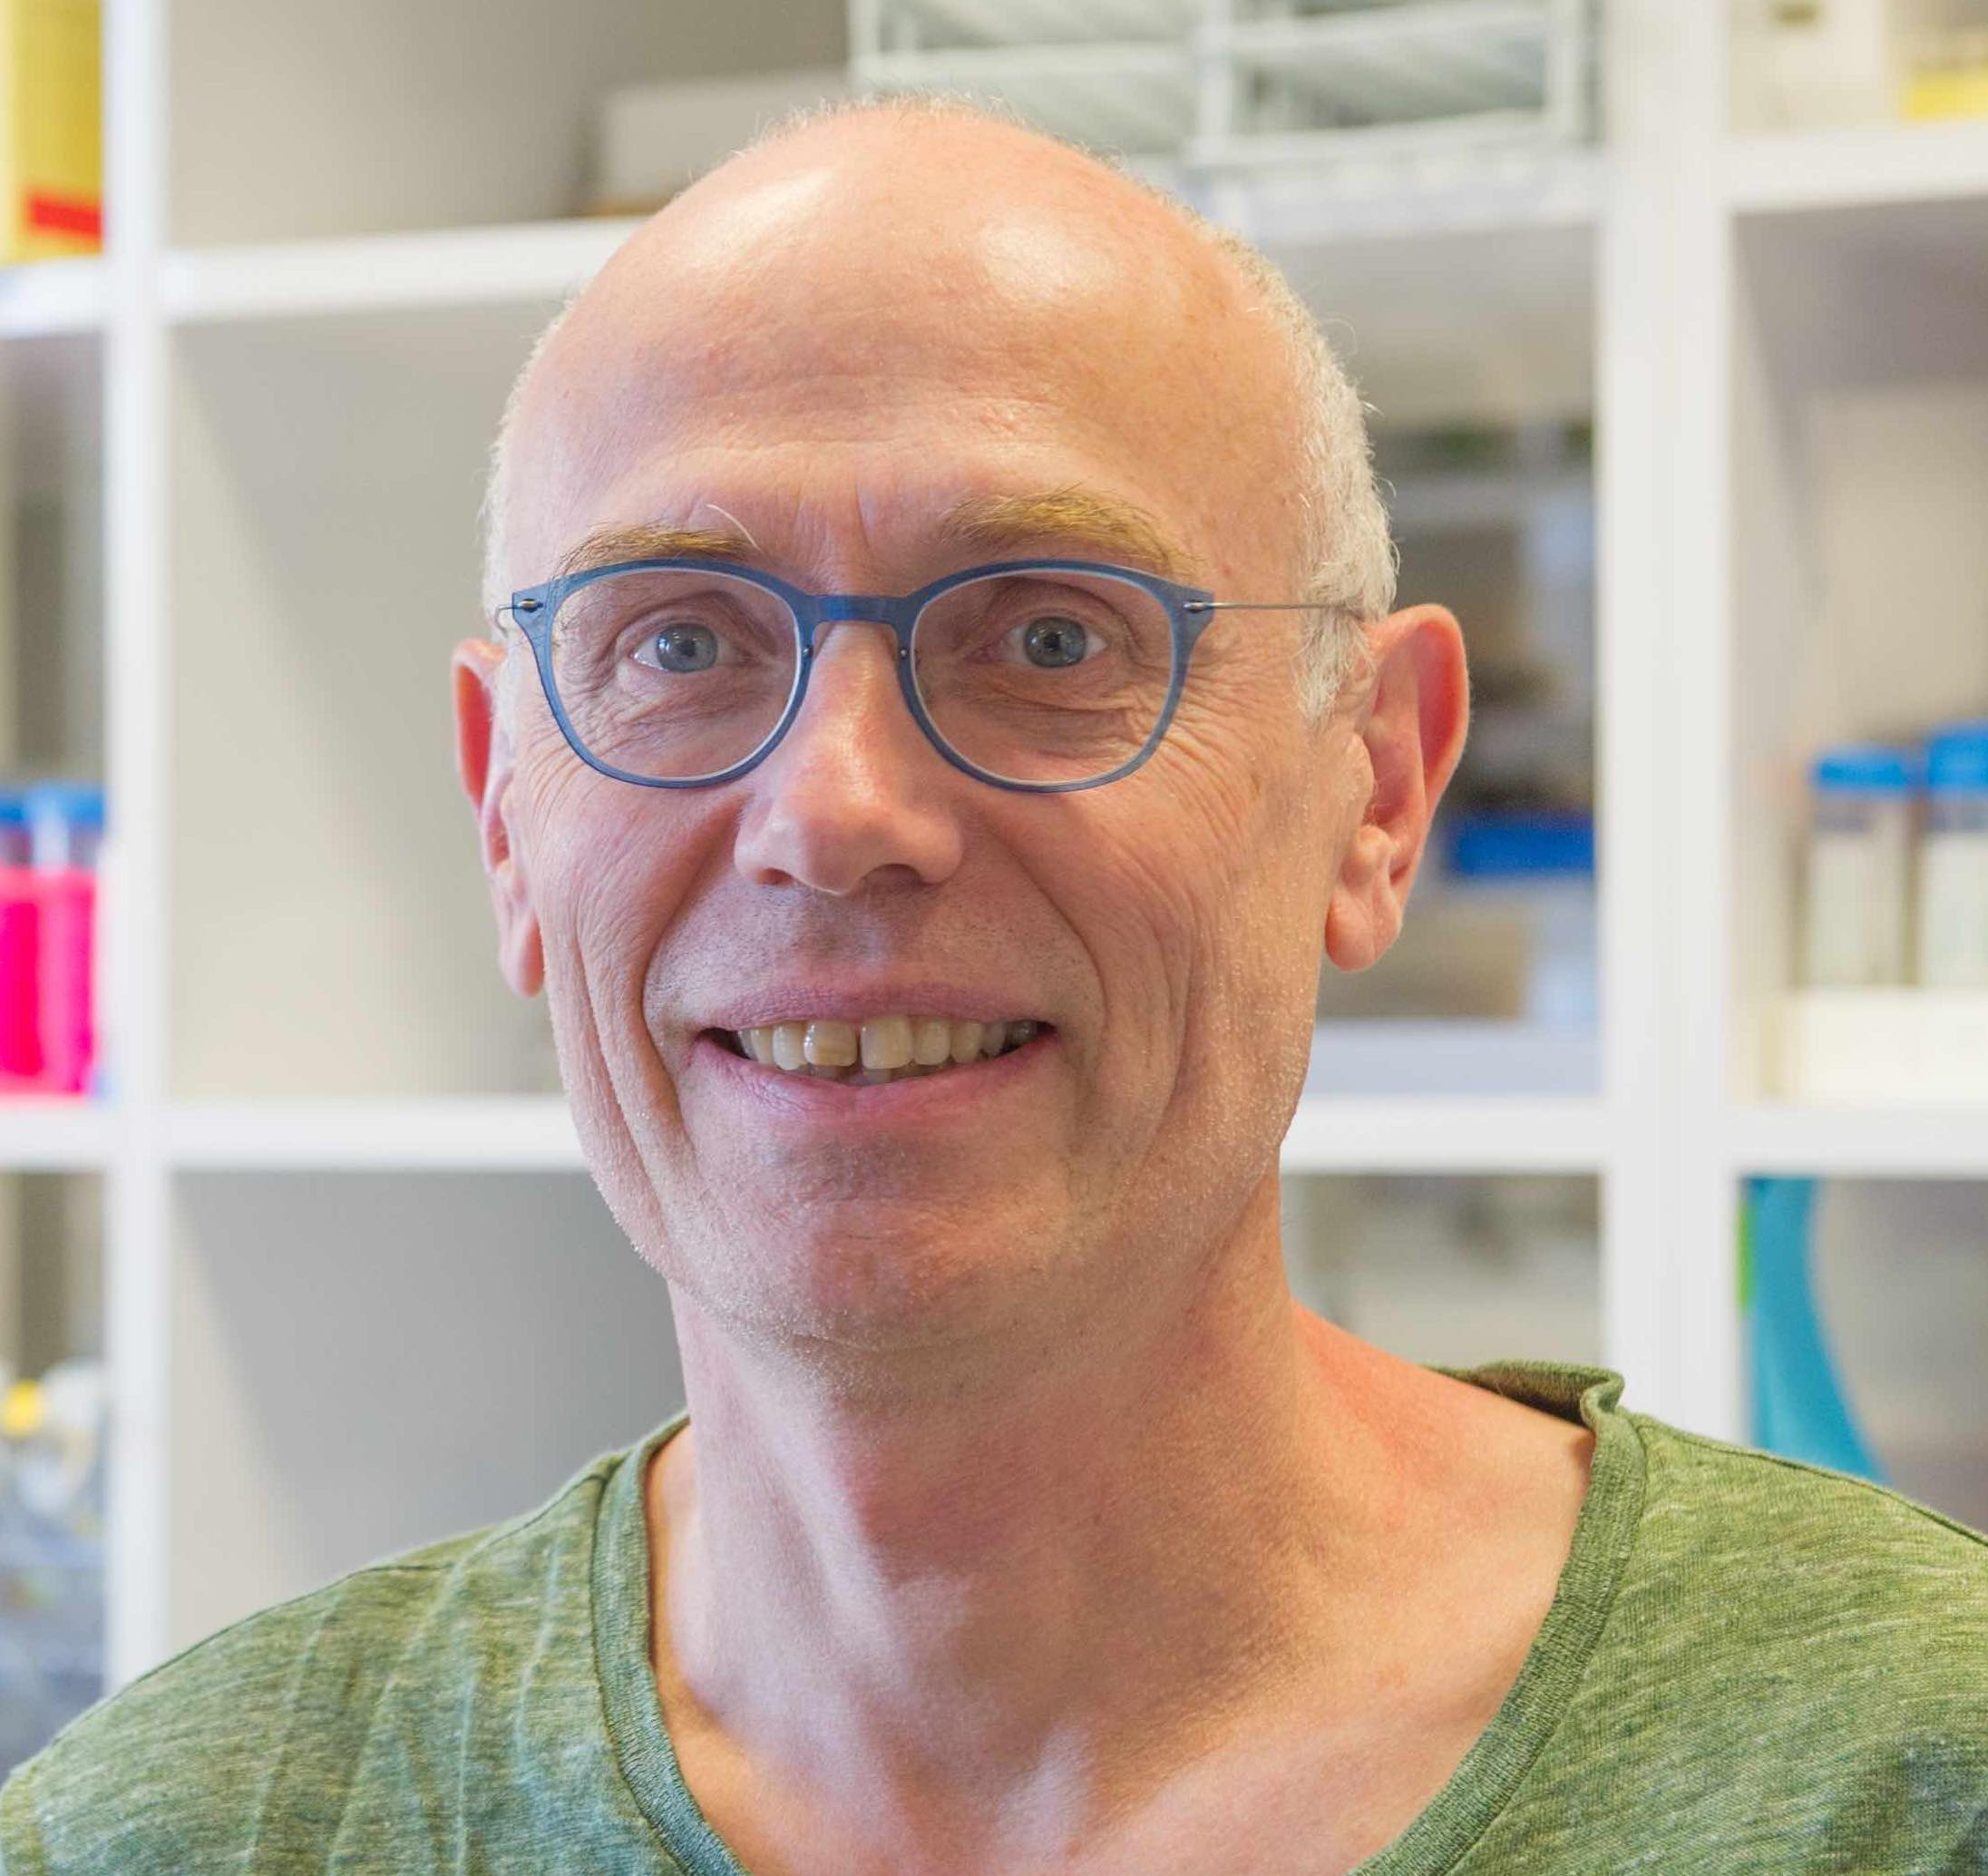 Schweisguth François (FRA) - Institut Pasteur, Paris, FranceLaboratory Website: https://research.pasteur.fr/fr/team/drosophila-developmental-genetics/The Schweisguth lab investigates how Notch regulates cells fates in space and time, how patterns emerge during development and how cell fate is coupled with cell polarity and shape changes during epithelial morphogenesis. These questions are addressed in various developmental contexts, notably the developing sensory bristles. While his research is largely observation-driven, his lab is combining imaging, genome engineering and modeling to go beyond observations and decipher the inner logic of these developmental processes. F Schweisguth is currently holding Research Director position at the CNRS, and is heading the CNRS UMR3738 / Dept of Developmental and Stem Cell Biology at the Institut Pasteur.